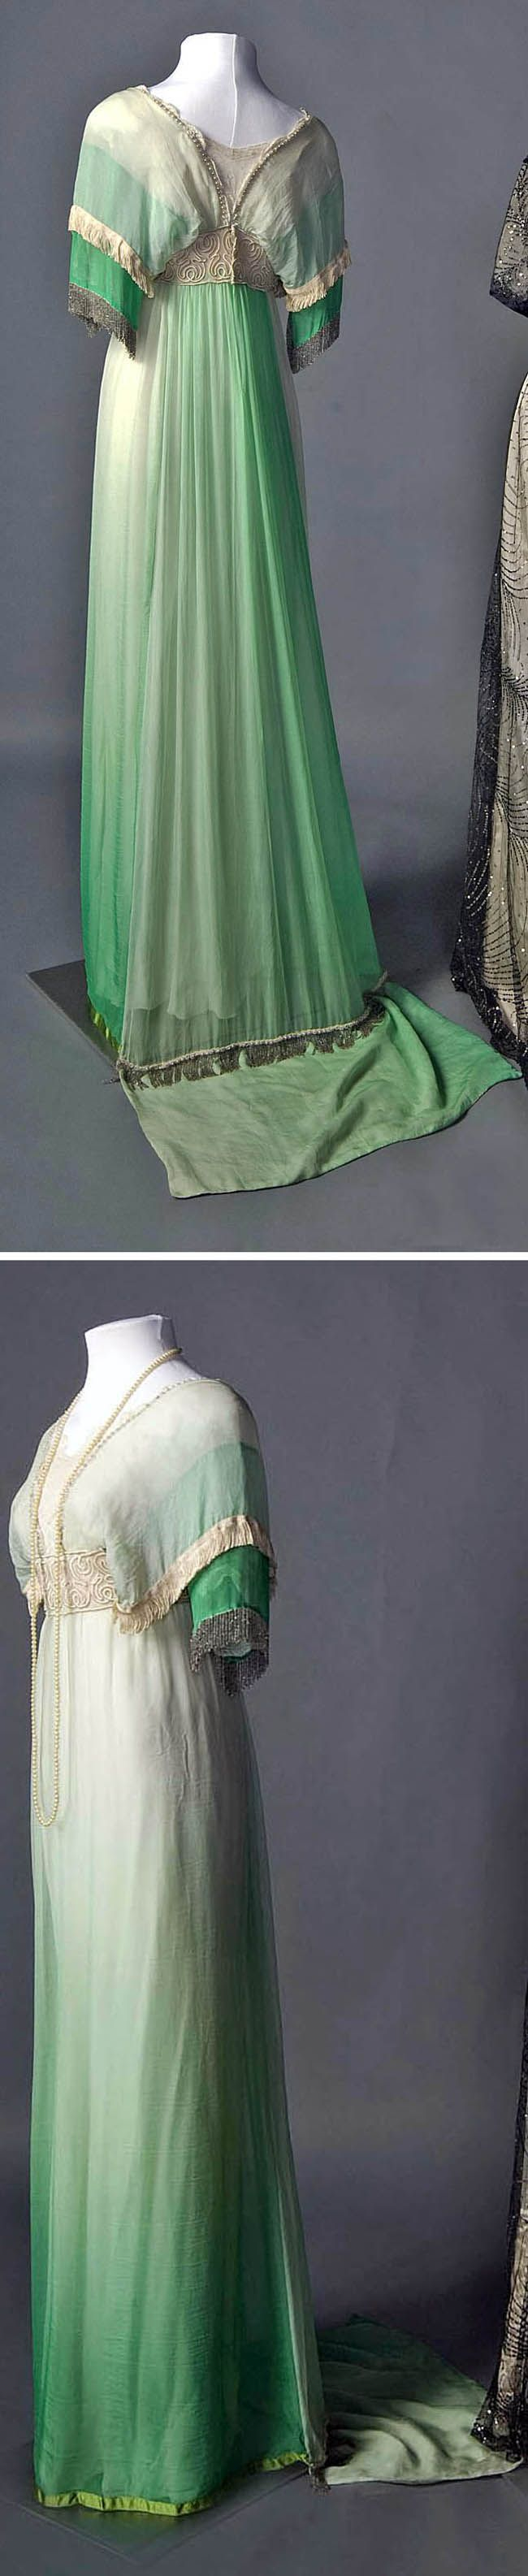 """Evening dress, probably French, ca. 1911-13. Smith College Historic Clothing: """"The Empire style of a straight column of drapery and a high waist was high fashion especially in the years 1912 and 1913. Heavy fringe on delicate fabrics was popular, too, like the white silk fringe and silver beaded fringe on the sleeves and on the train of the green dress. The bodice is trimmed with pale pink pearls and pink chiffon rose buds."""""""